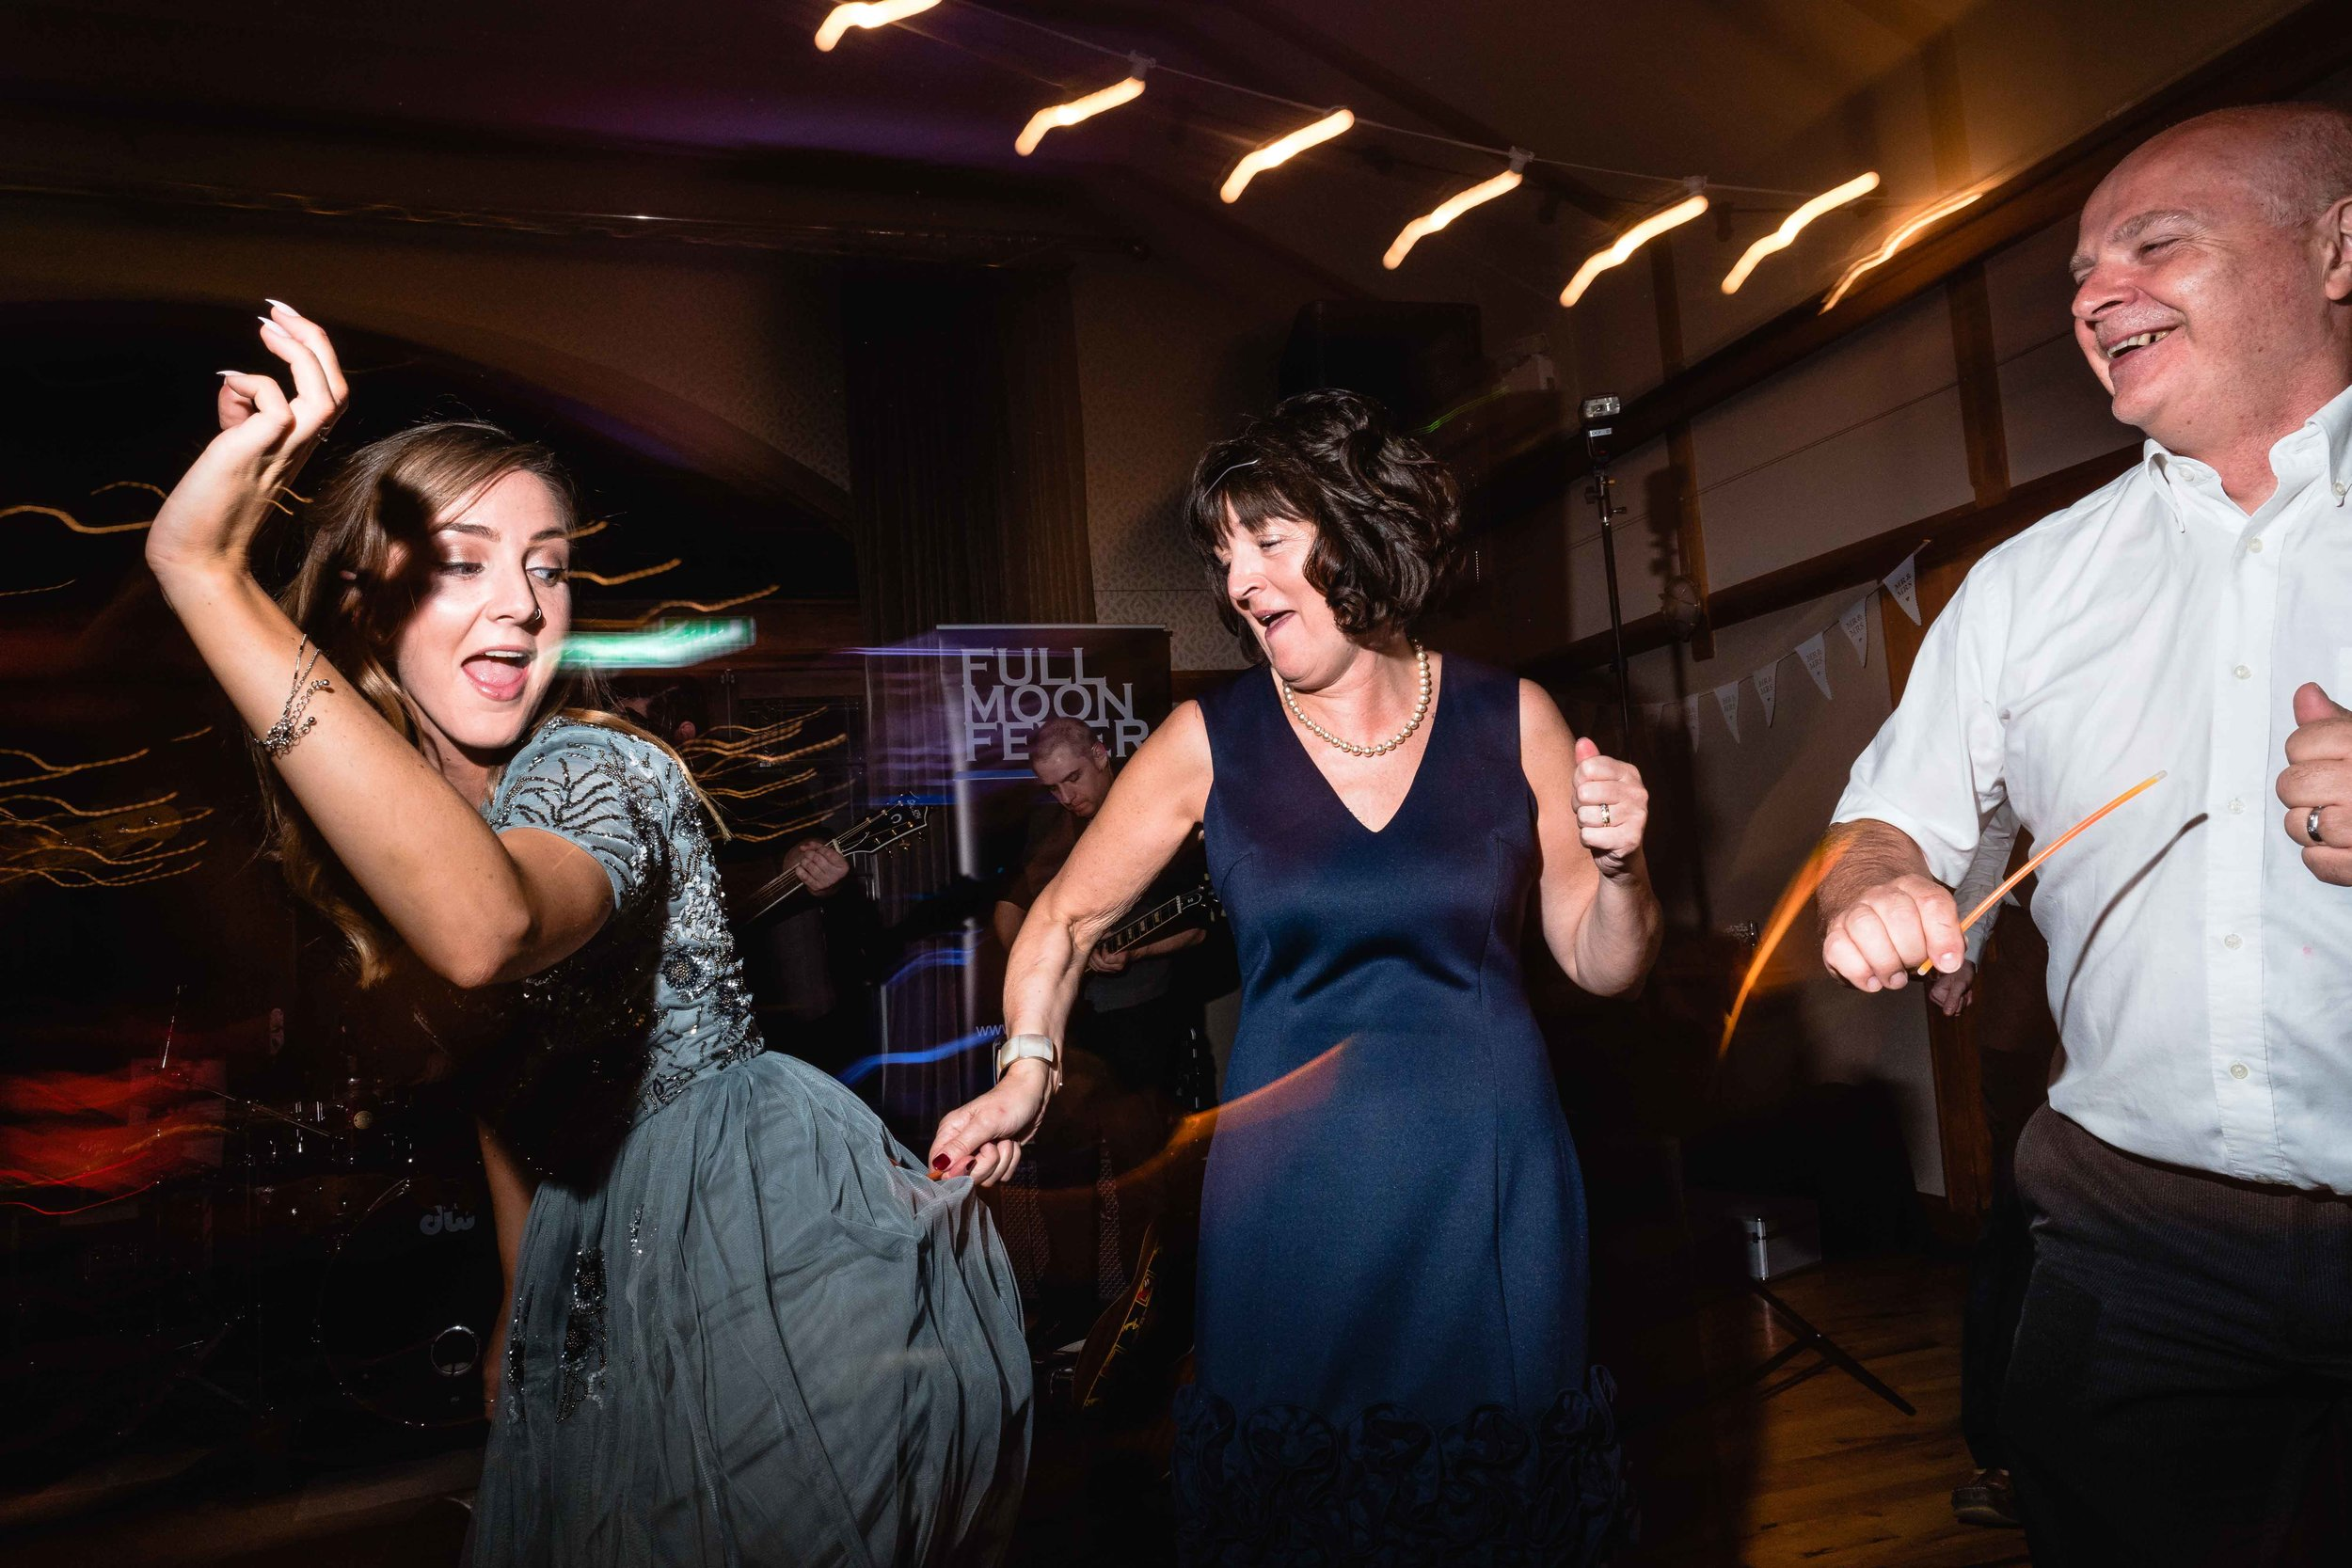 Natural candid photograph of guests dancing at a wedding in Ireland